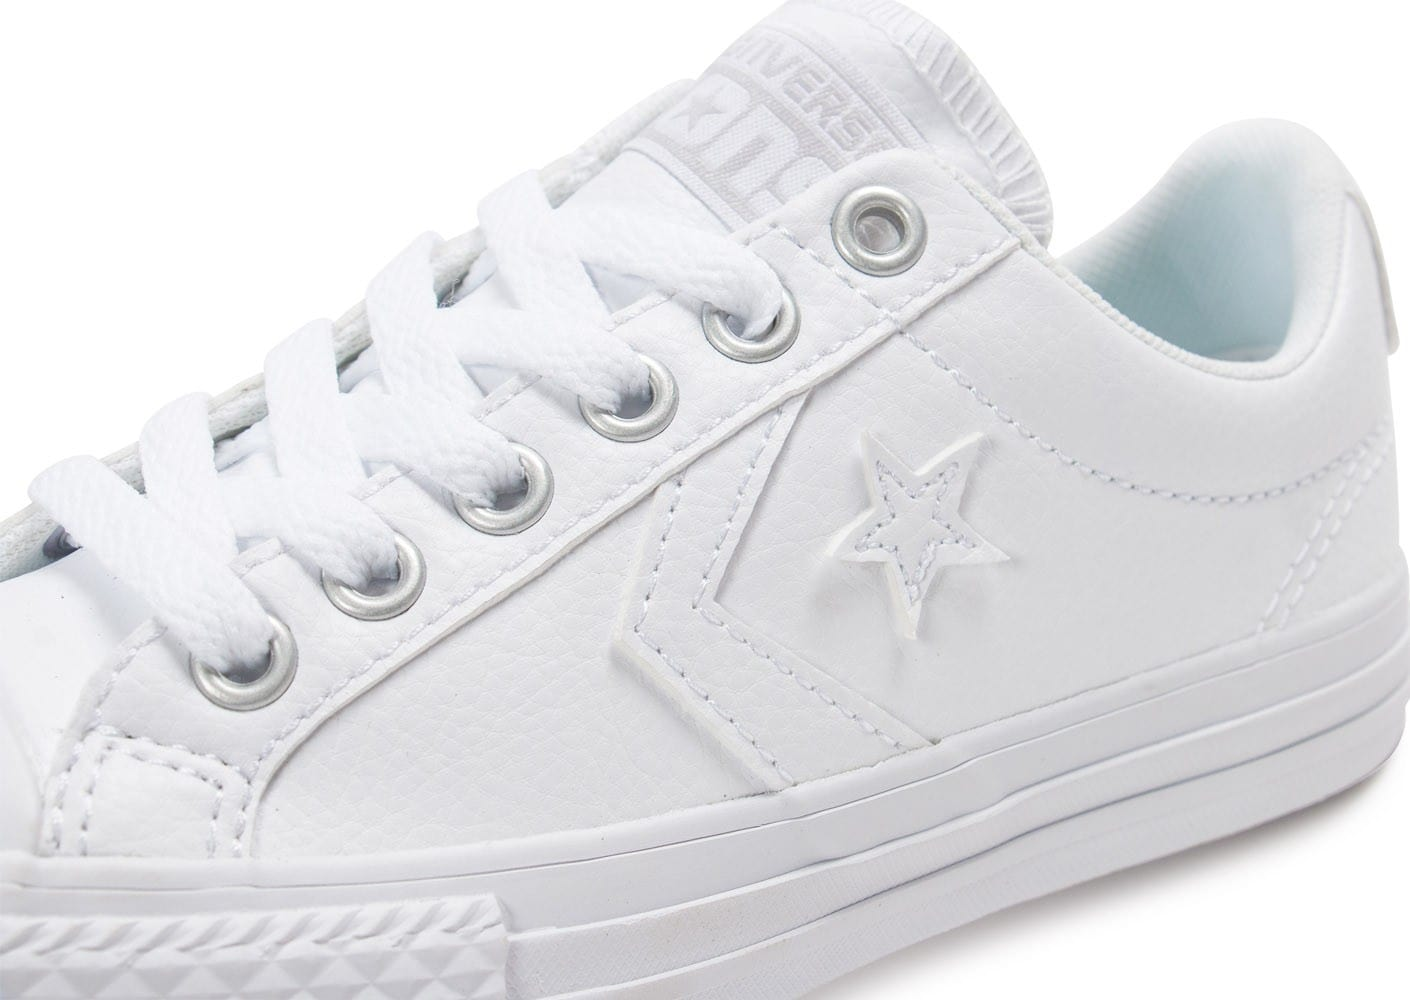 converse star player enfant cuir blanche chaussures enfant chausport. Black Bedroom Furniture Sets. Home Design Ideas